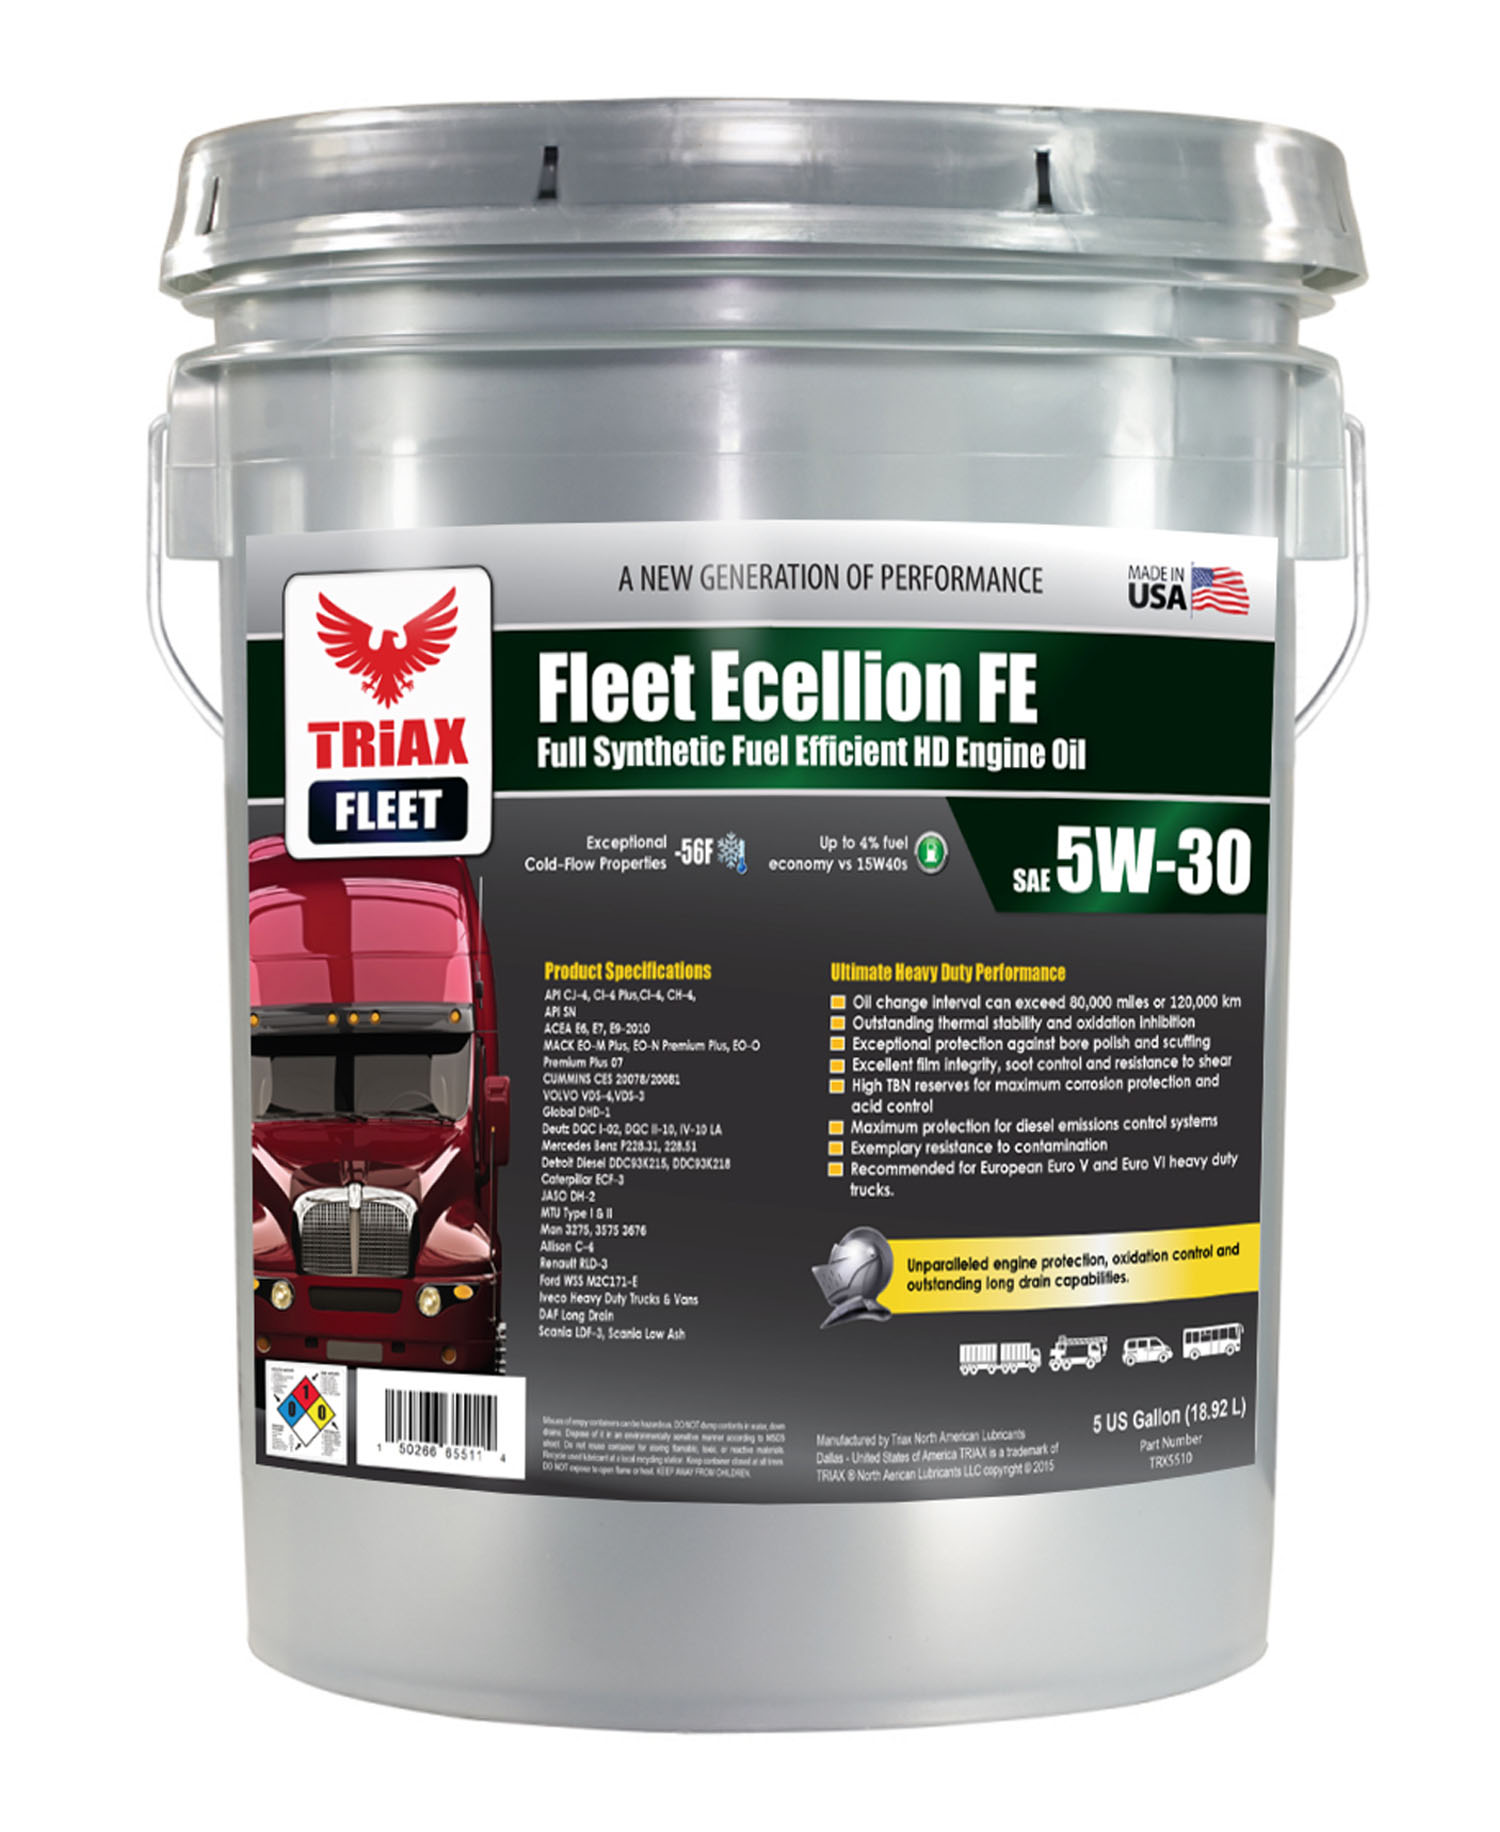 TRIAX Fleet Ecellion FE 5W-30 Euro 6 si IVECO